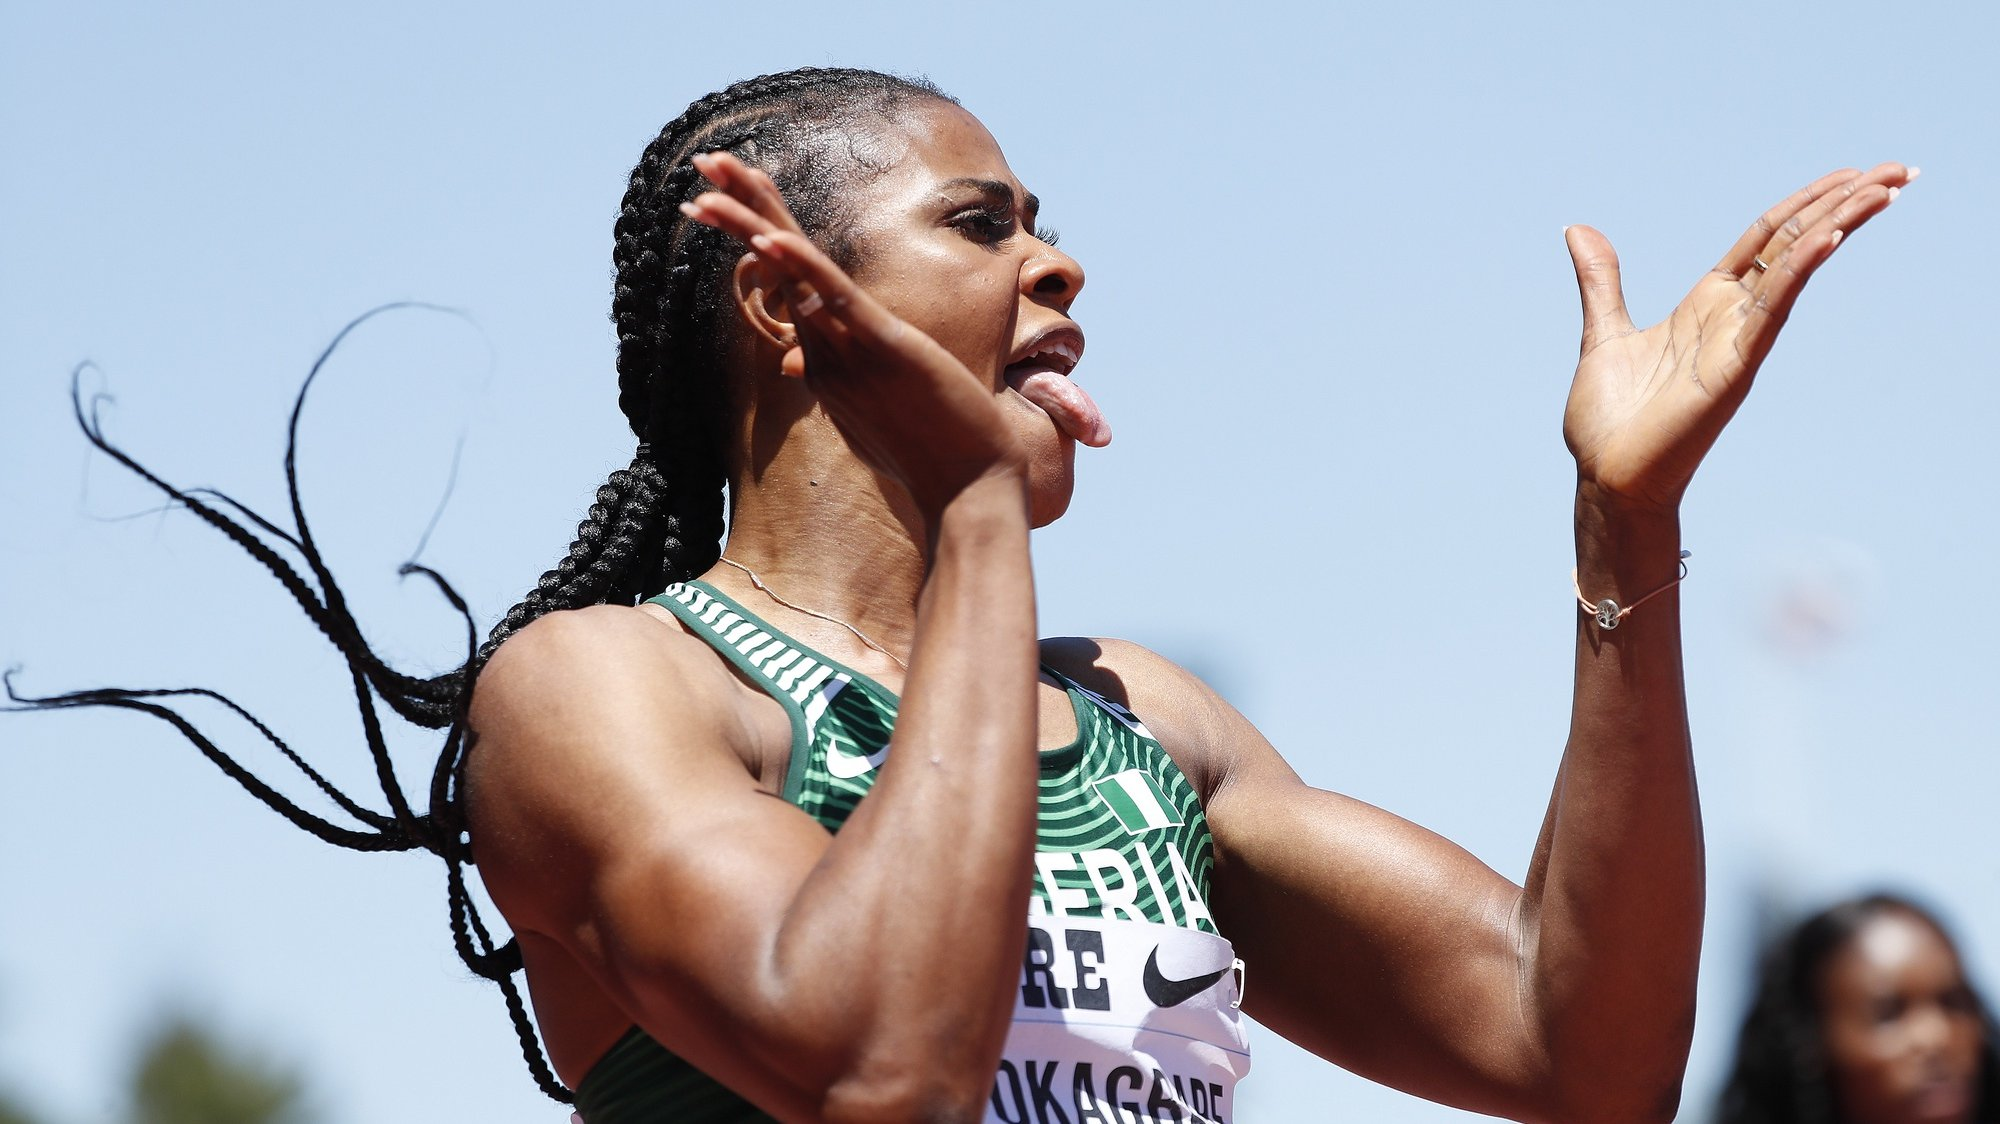 epa07686268 Blessing Okagbare of Nigeria reacts after winning the Women 200m during the Athletics IAAF Diamond League - Prefontaine Classic at Stanford, California, USA, 30 June 2019.  EPA/JOHN G. MABANGLO